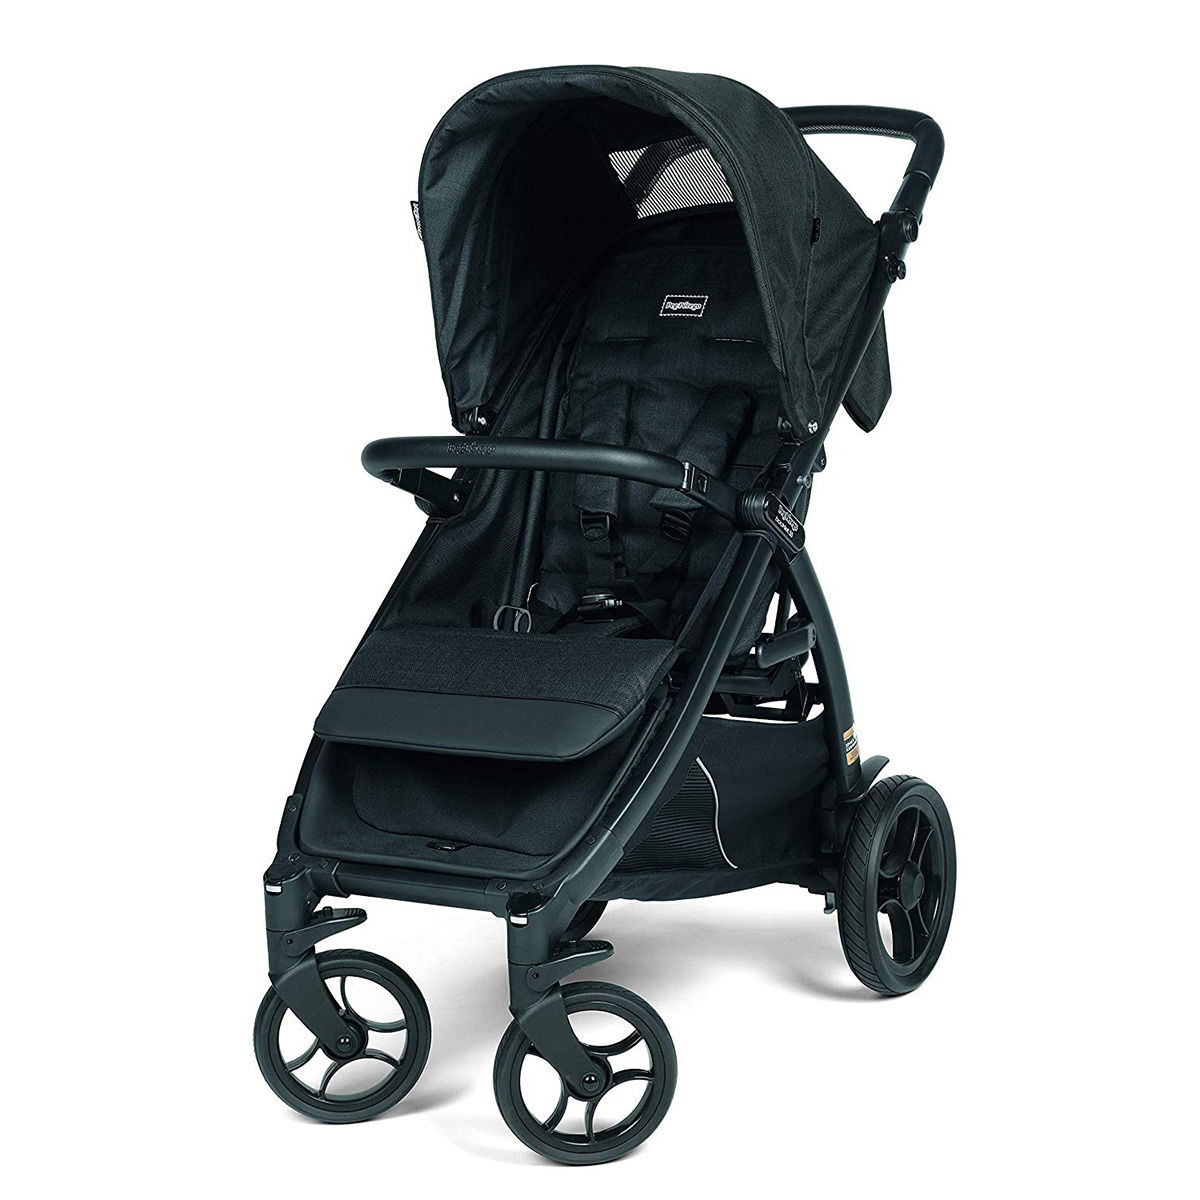 Booklet 50 Peg Perego